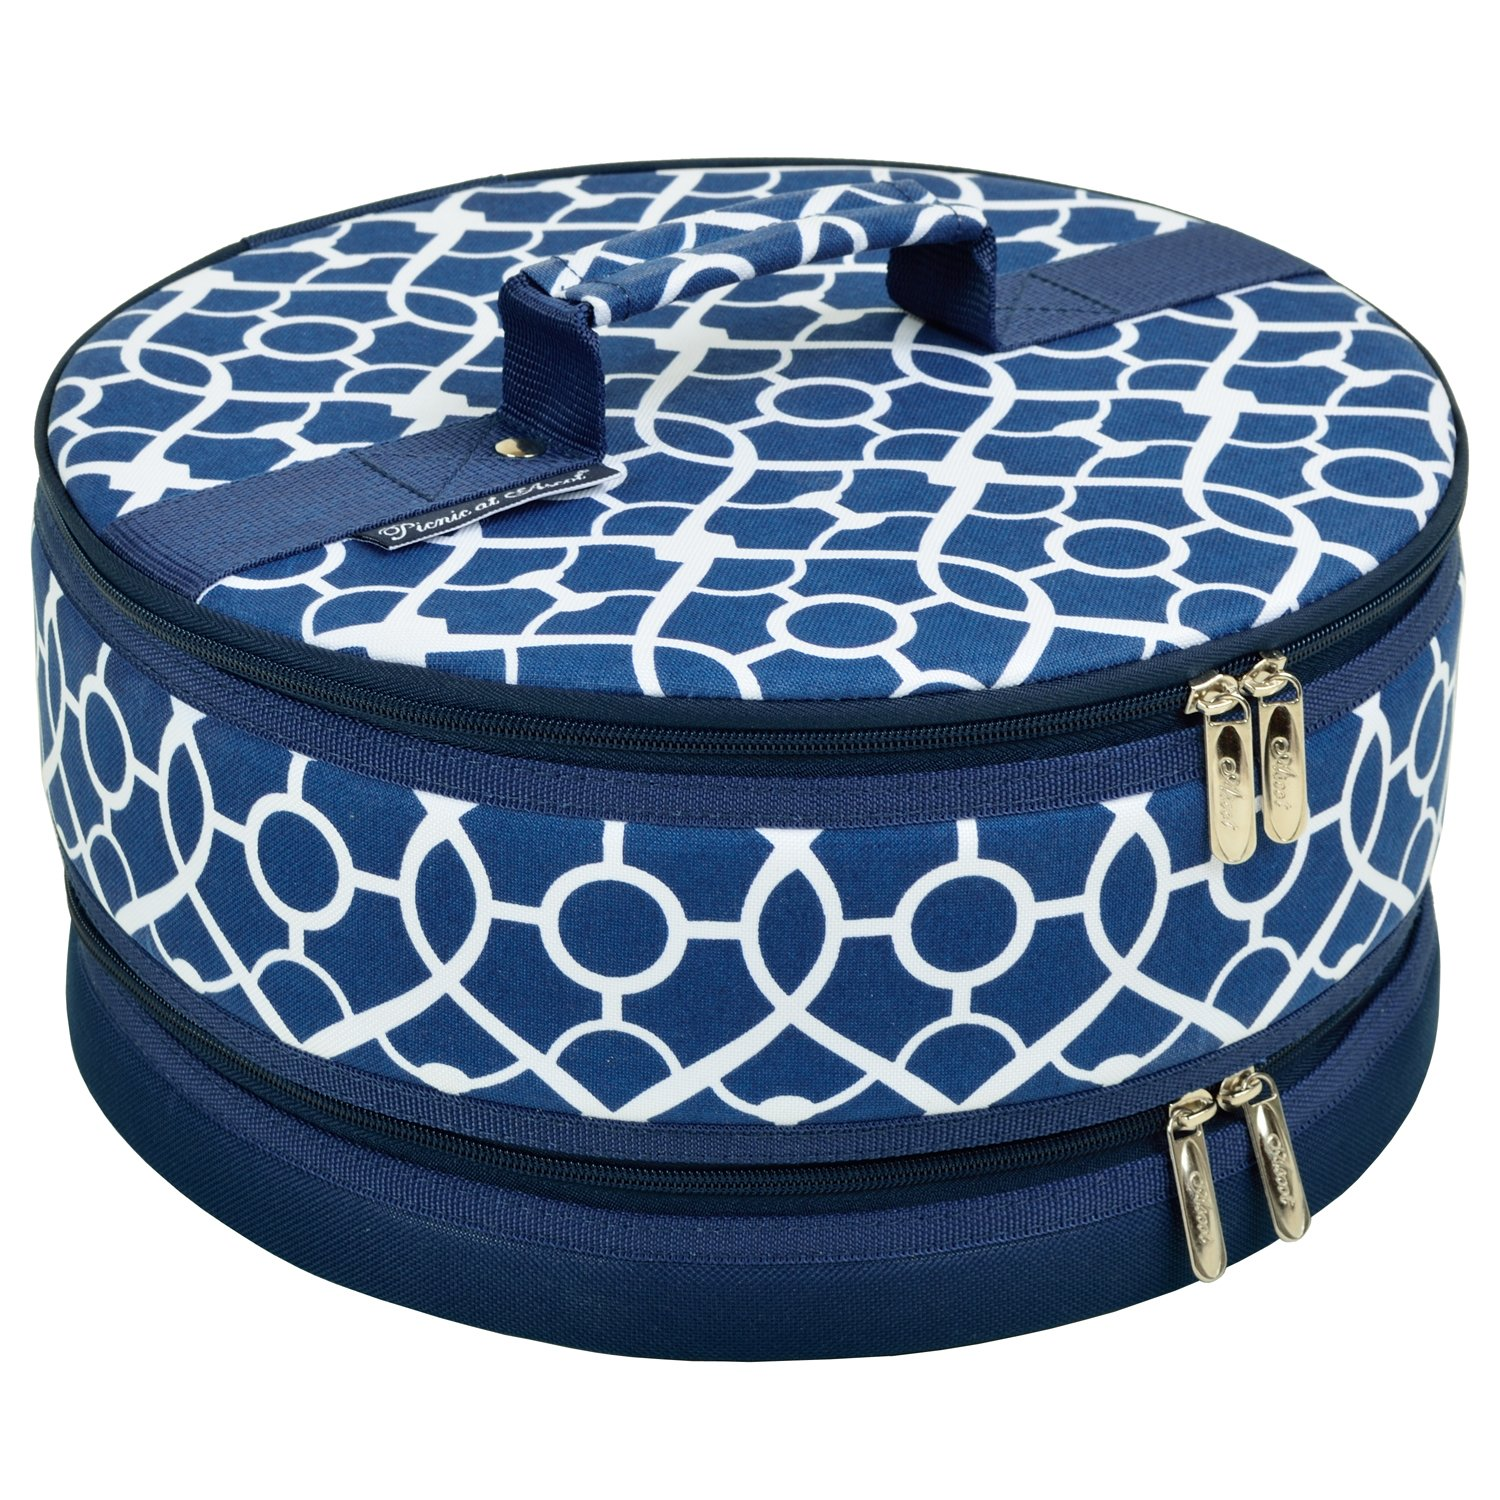 Picnic at Ascot Cake Carrier, Trellis Blue